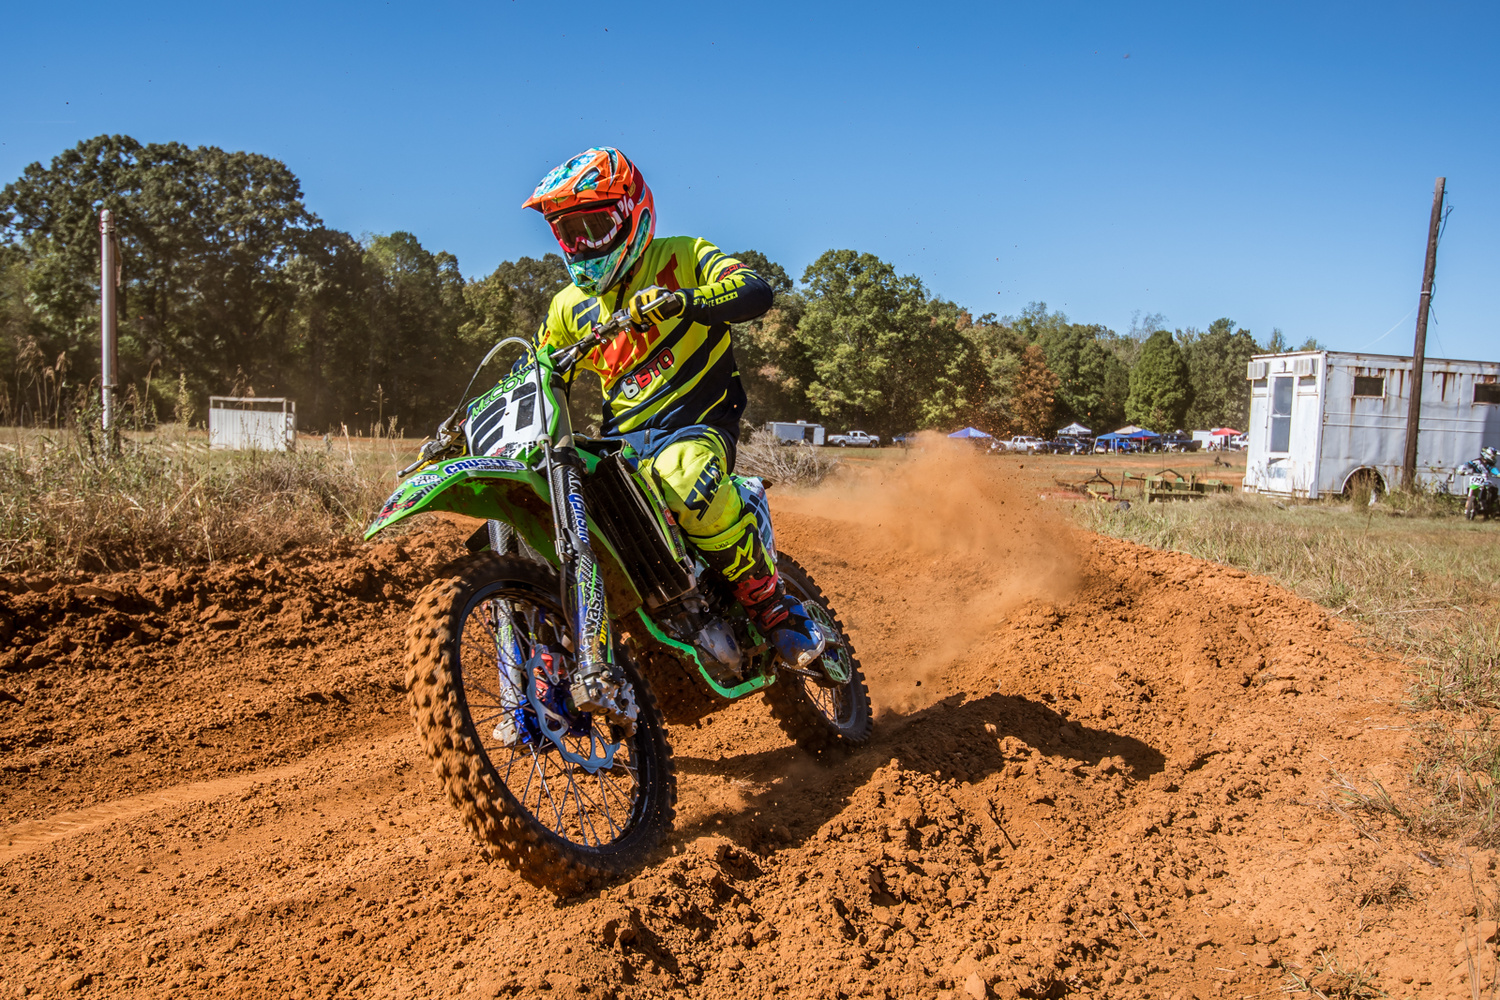 Up Close MX by Chad Martin